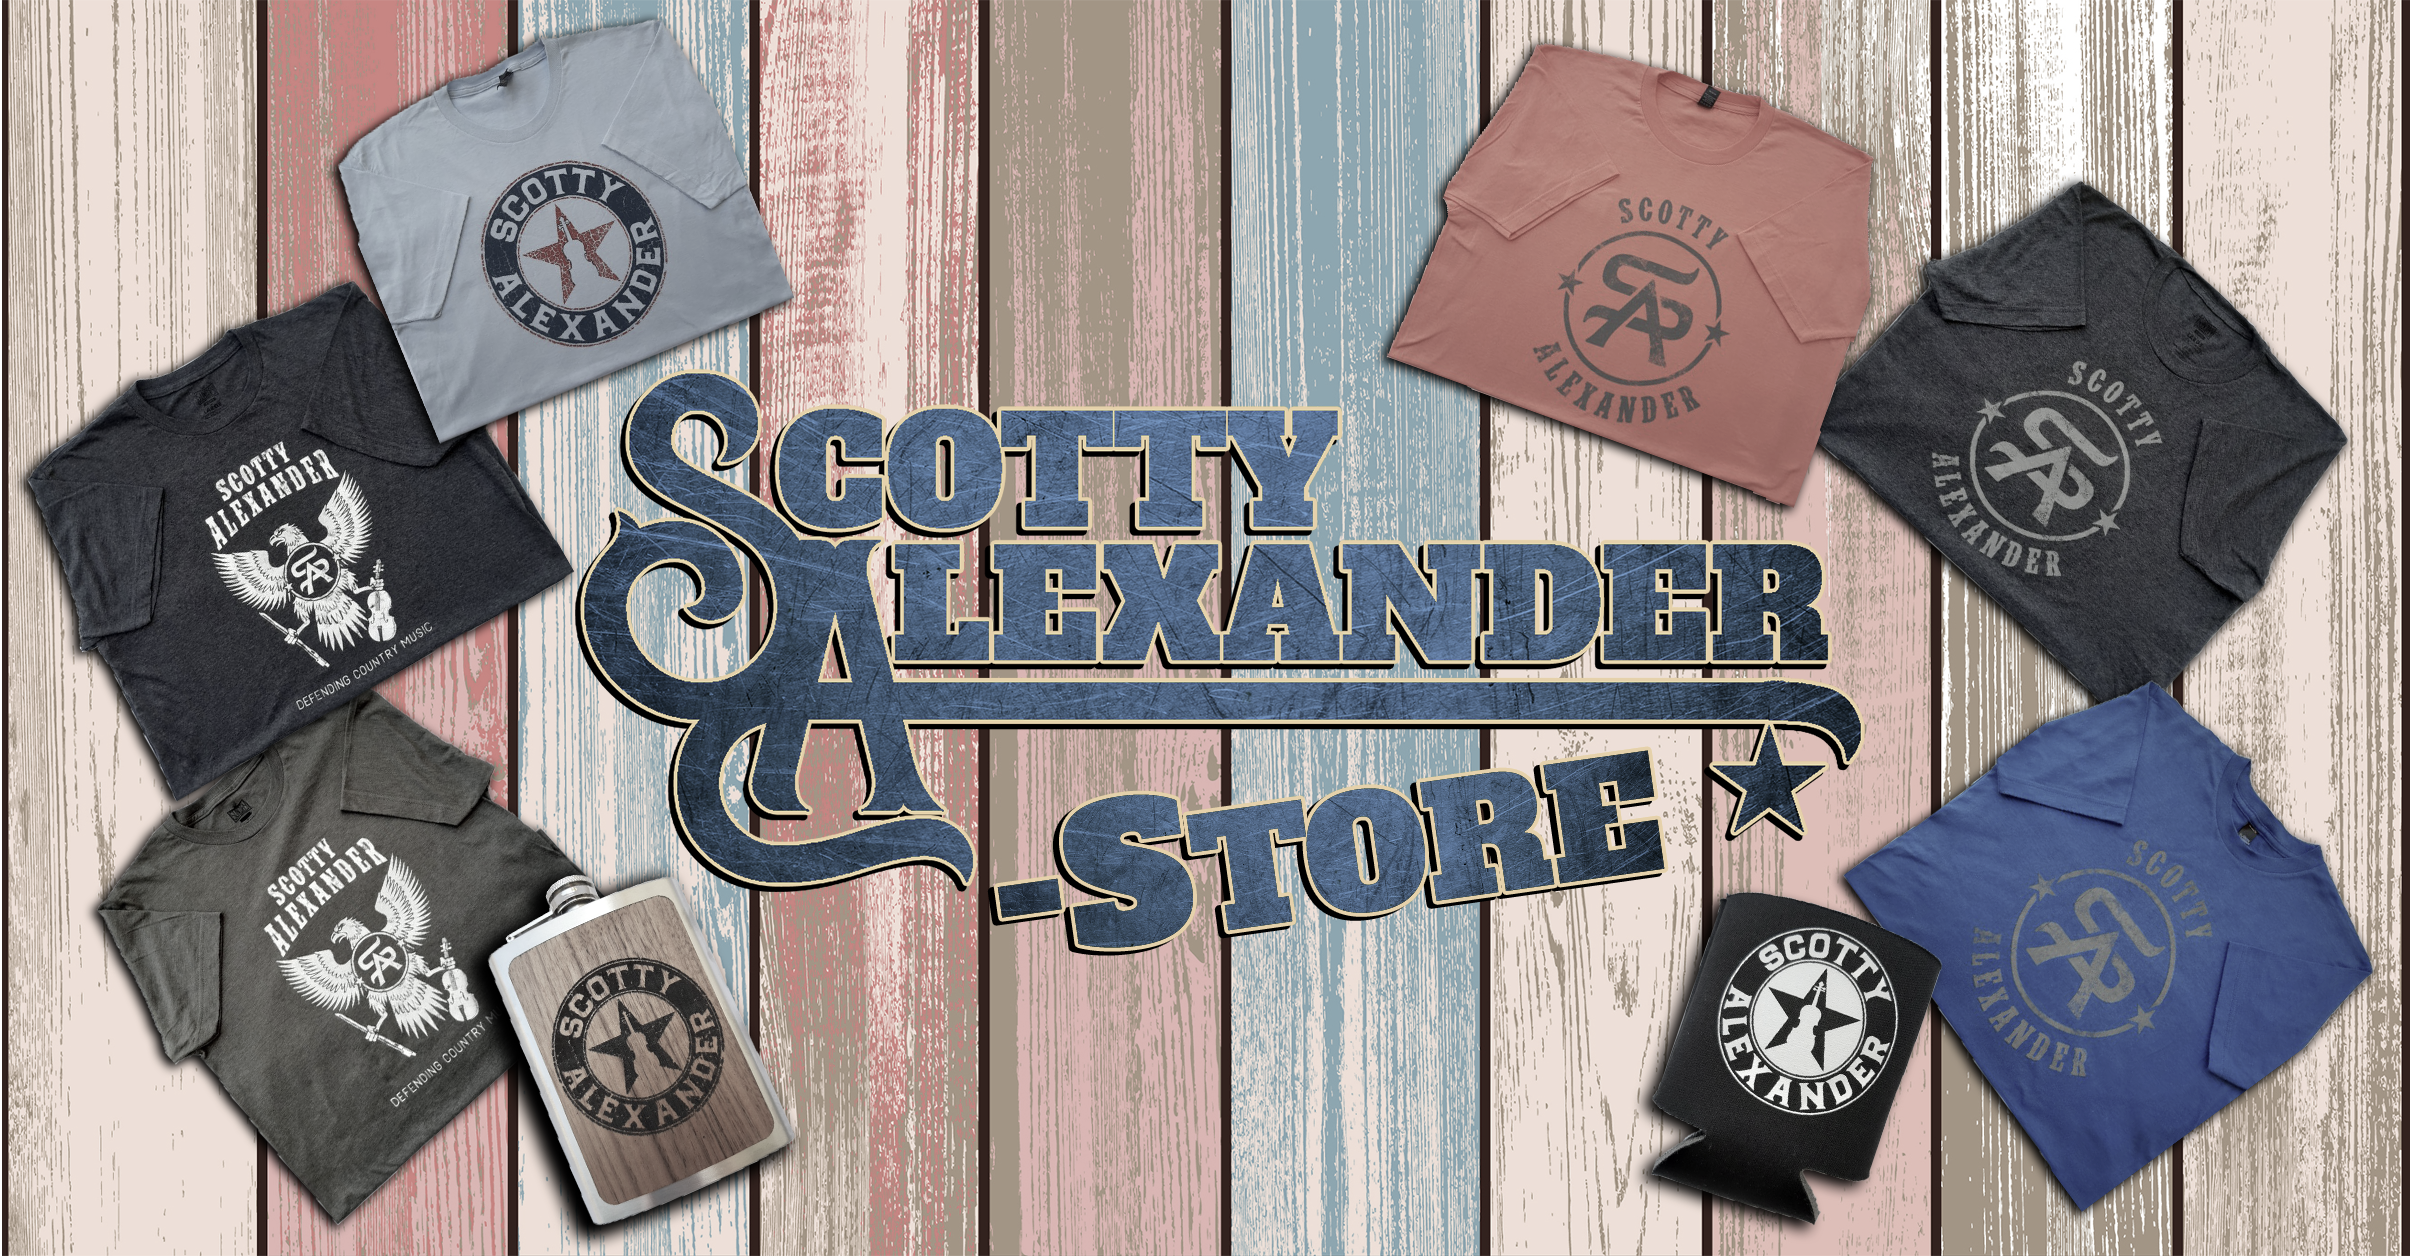 Now Open Check out Scotty's new online store